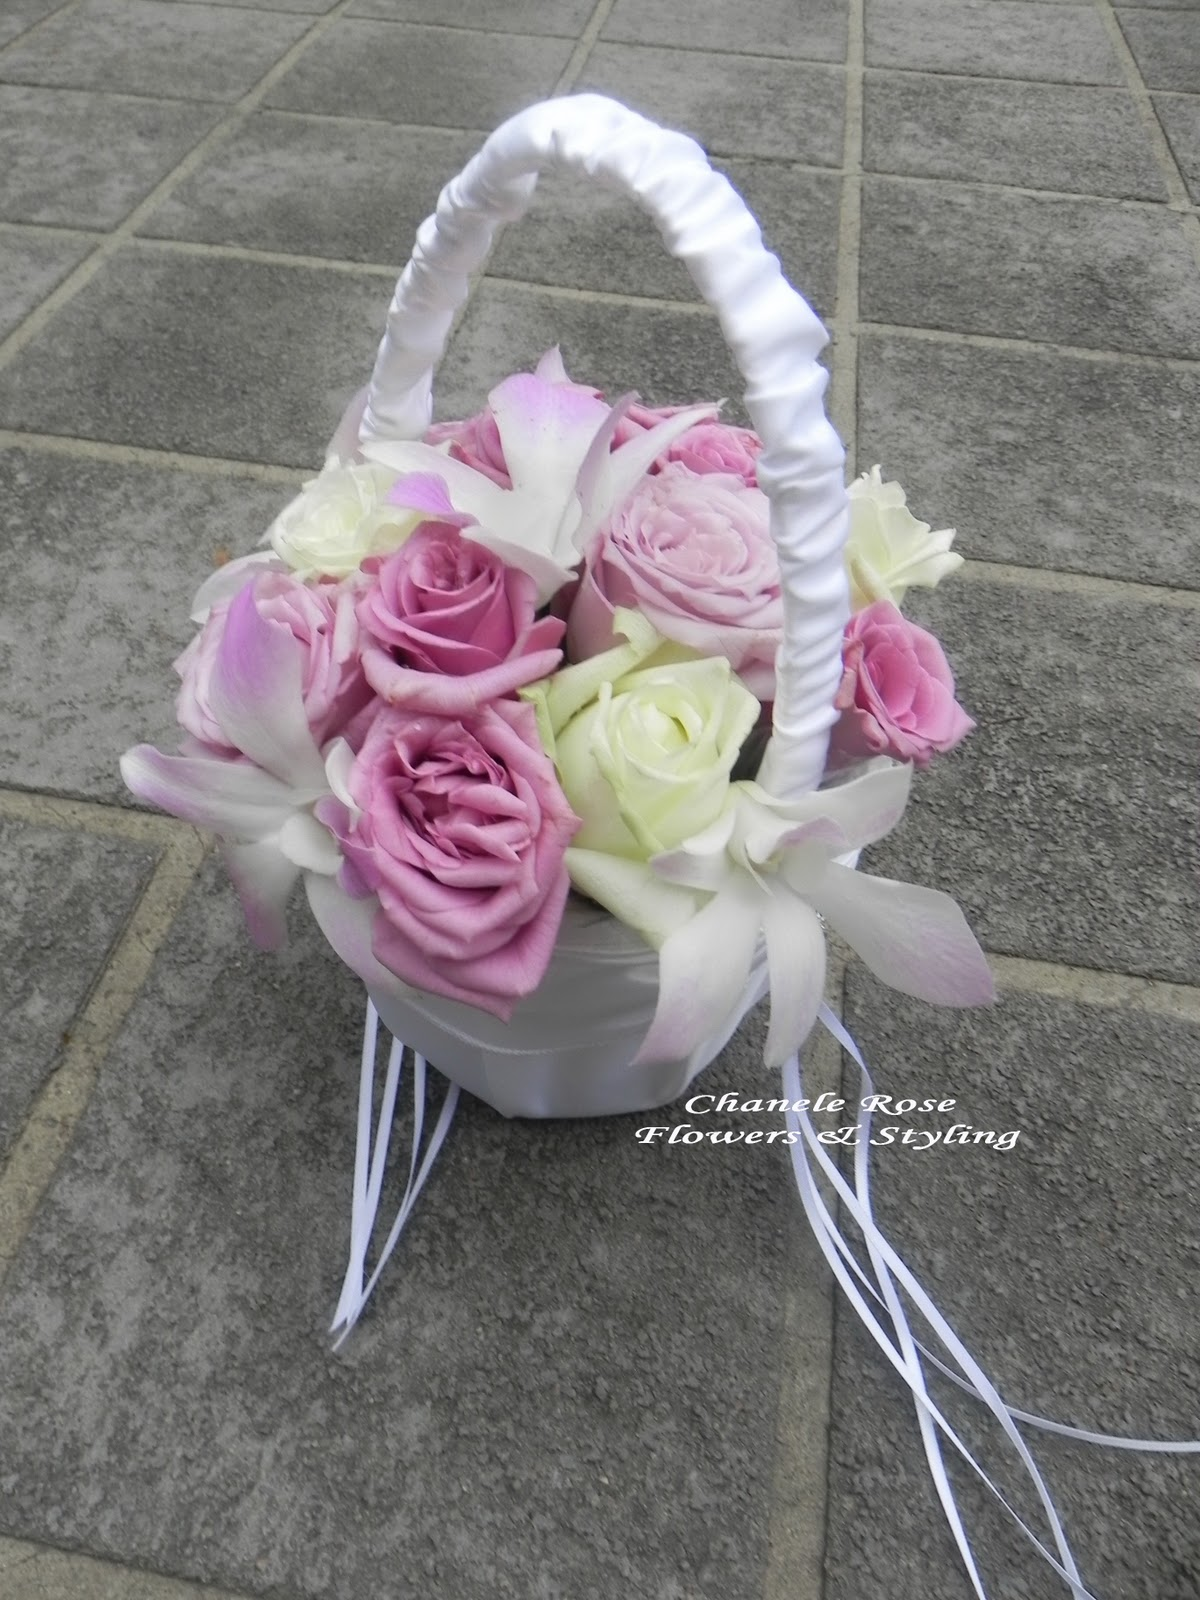 Flower Girl Baskets Sydney : Chanele rose flowers sydney wedding stylist